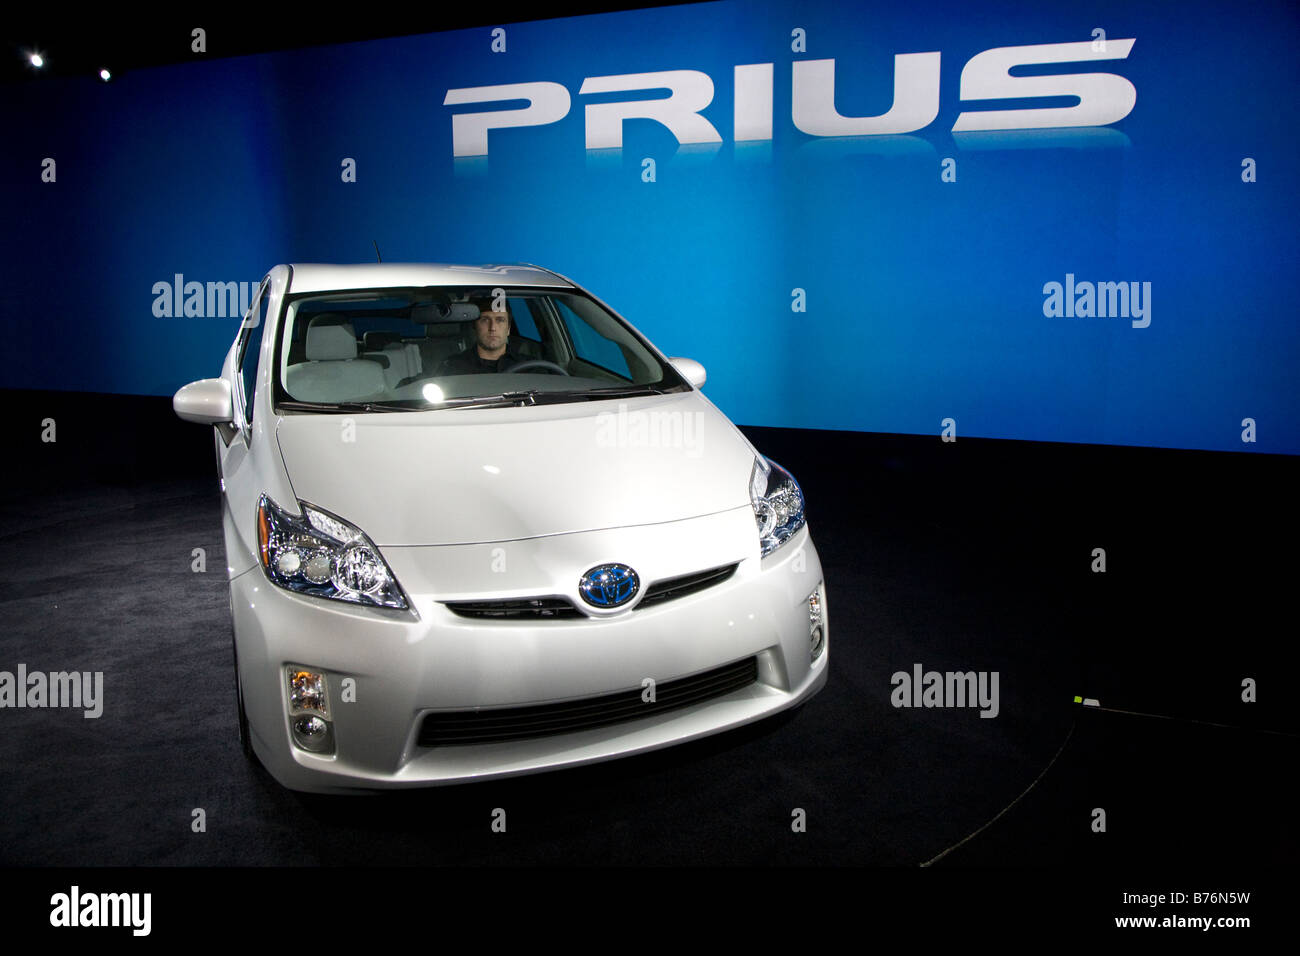 Detroit Michigan The 2010 Toyota Prius on display at the North American International Auto Show - Stock Image